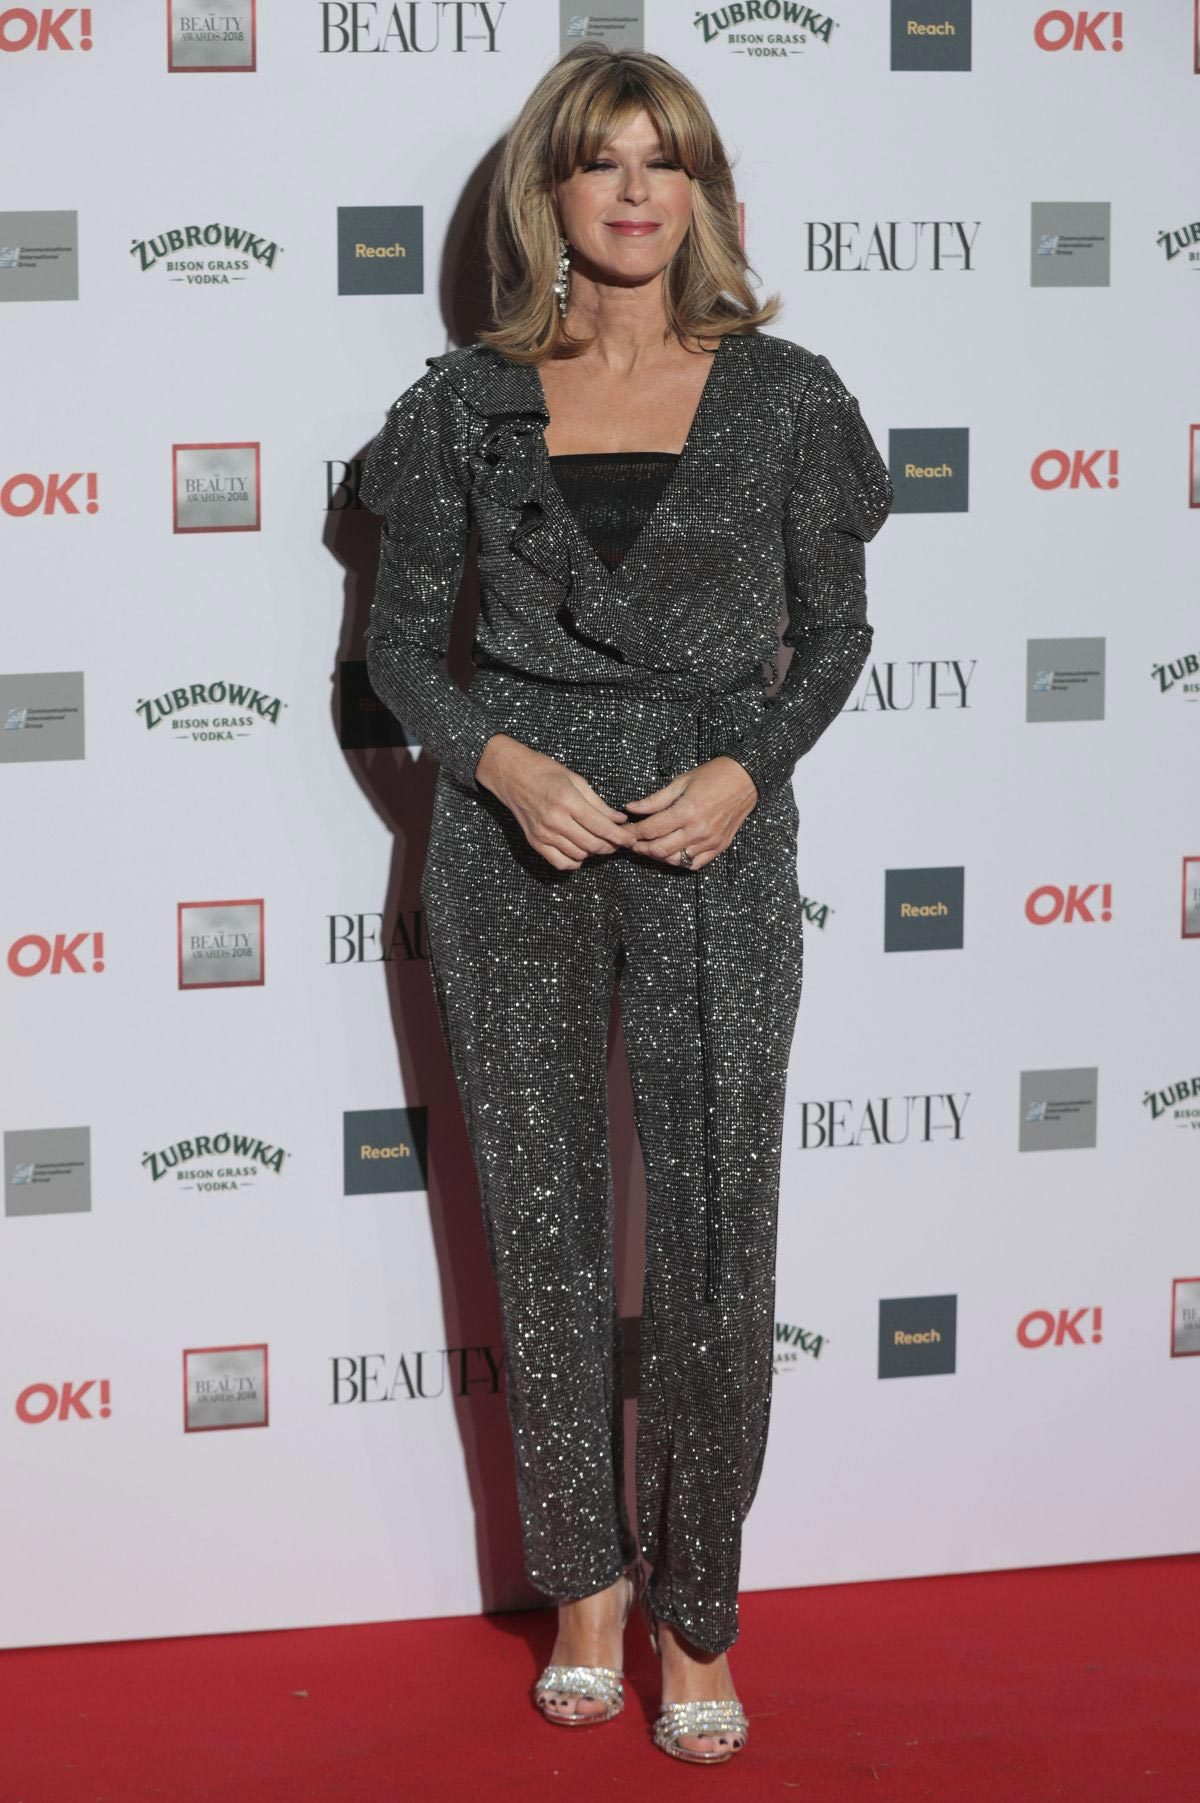 Kate Garraway at Beauty Awards 2018 in London 2018/11/26 1